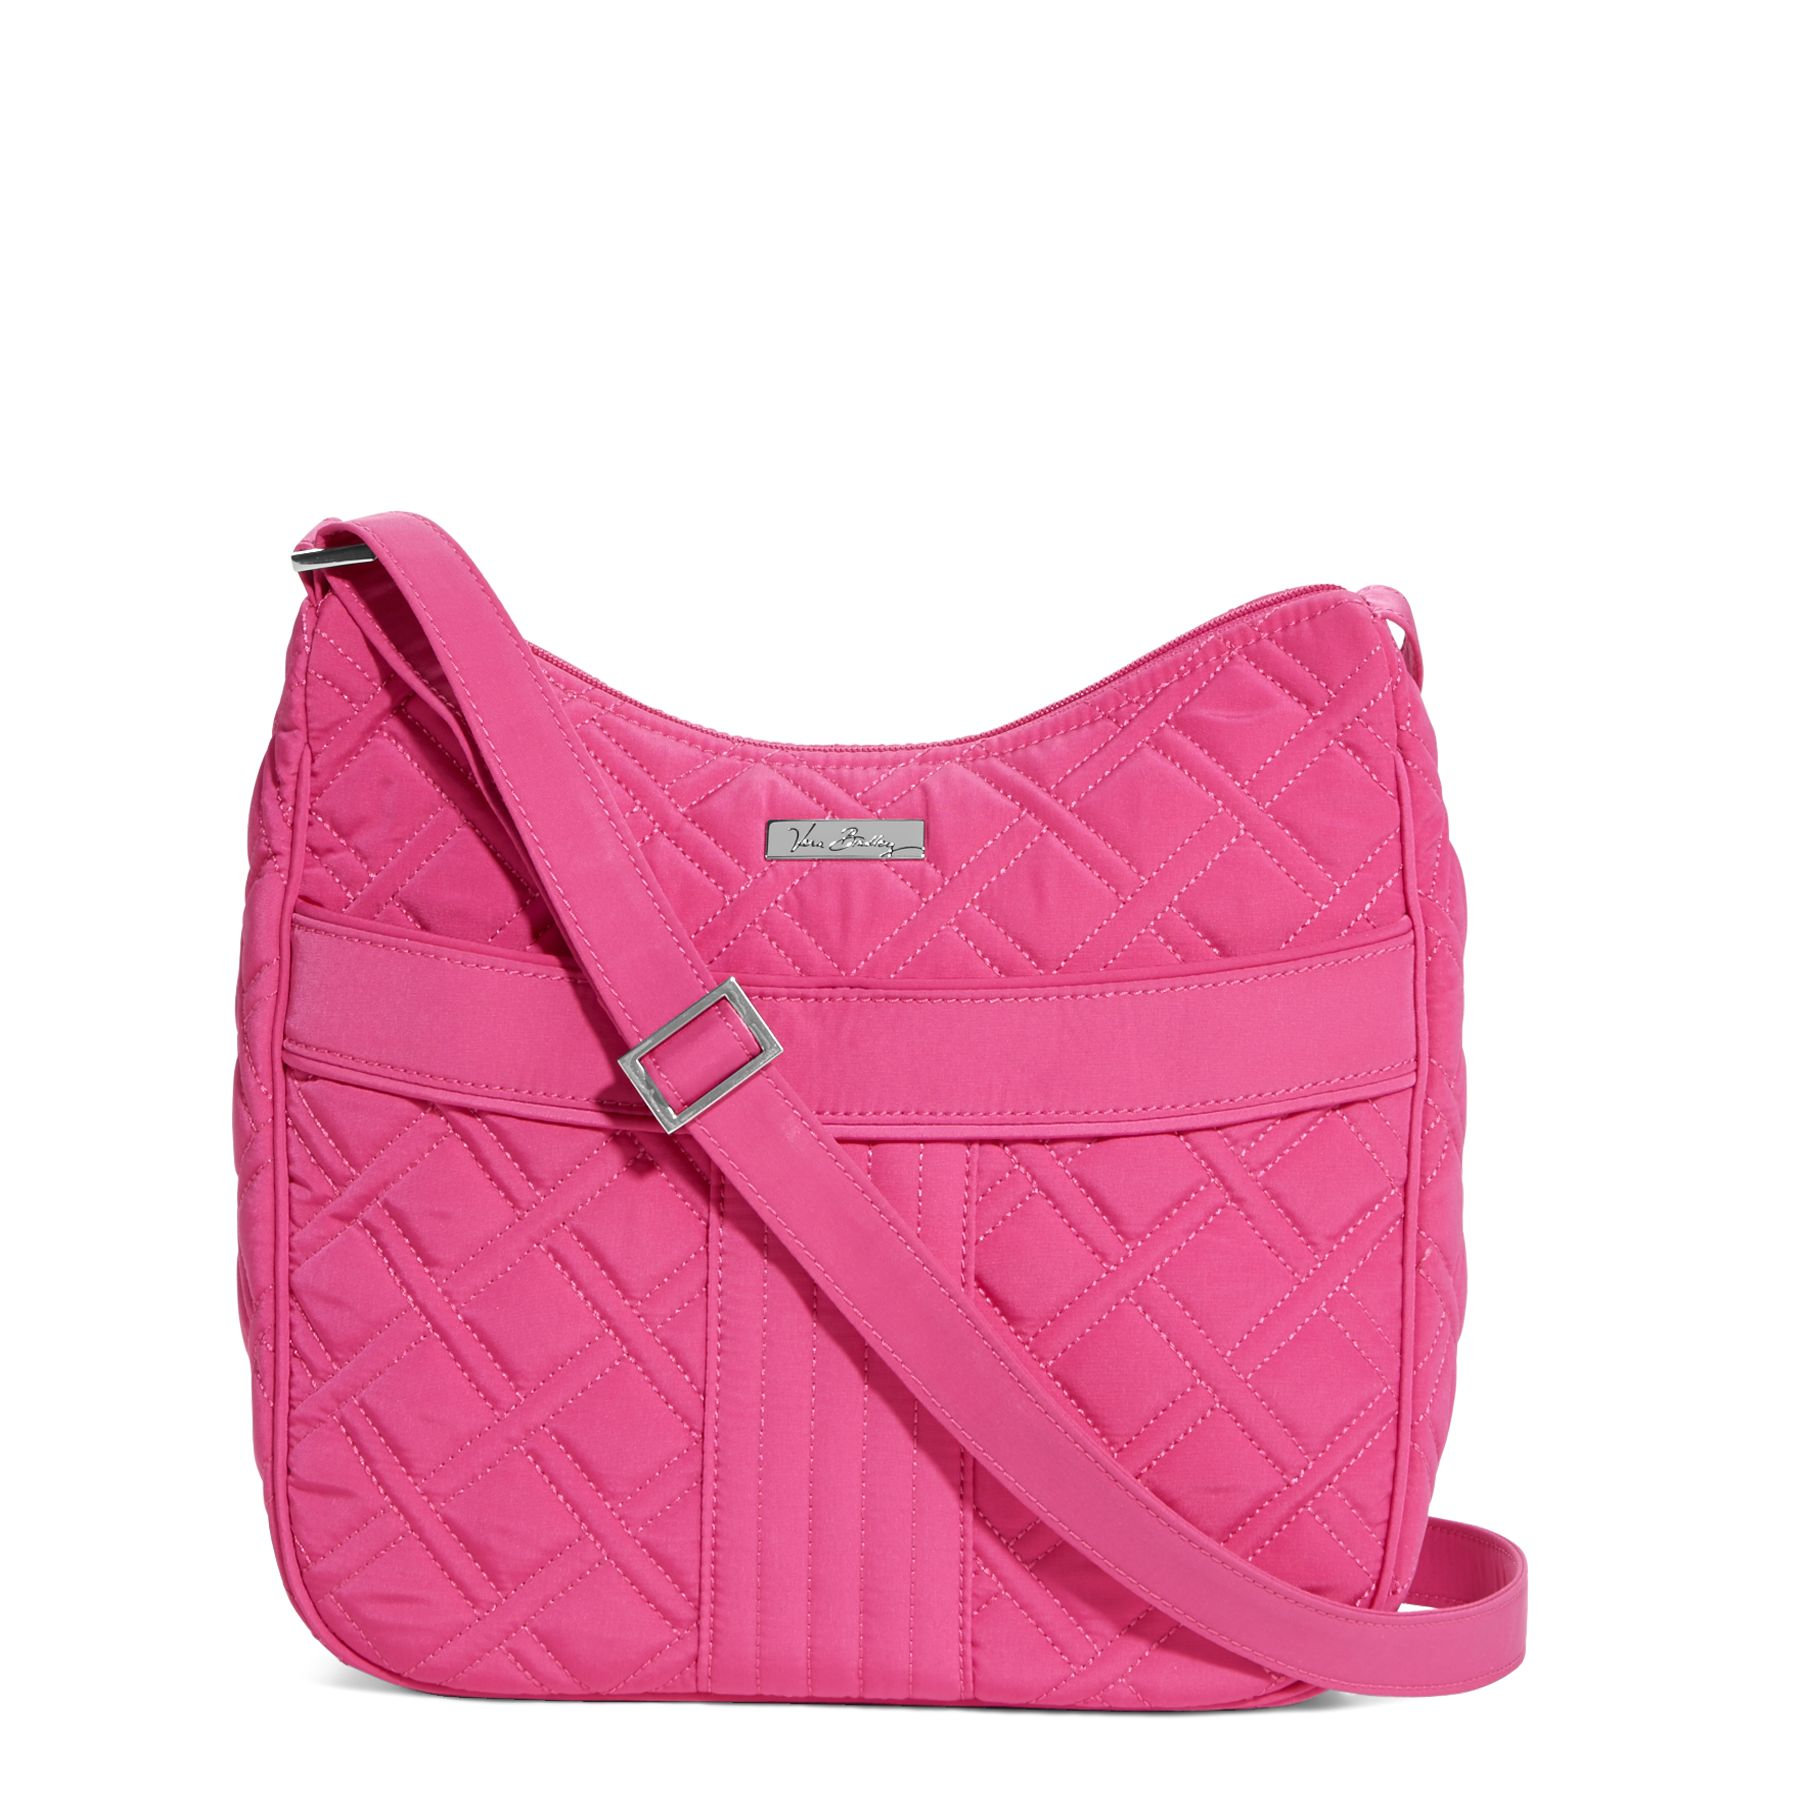 Vera Bradley Carryall Crossbody in Fuchsia